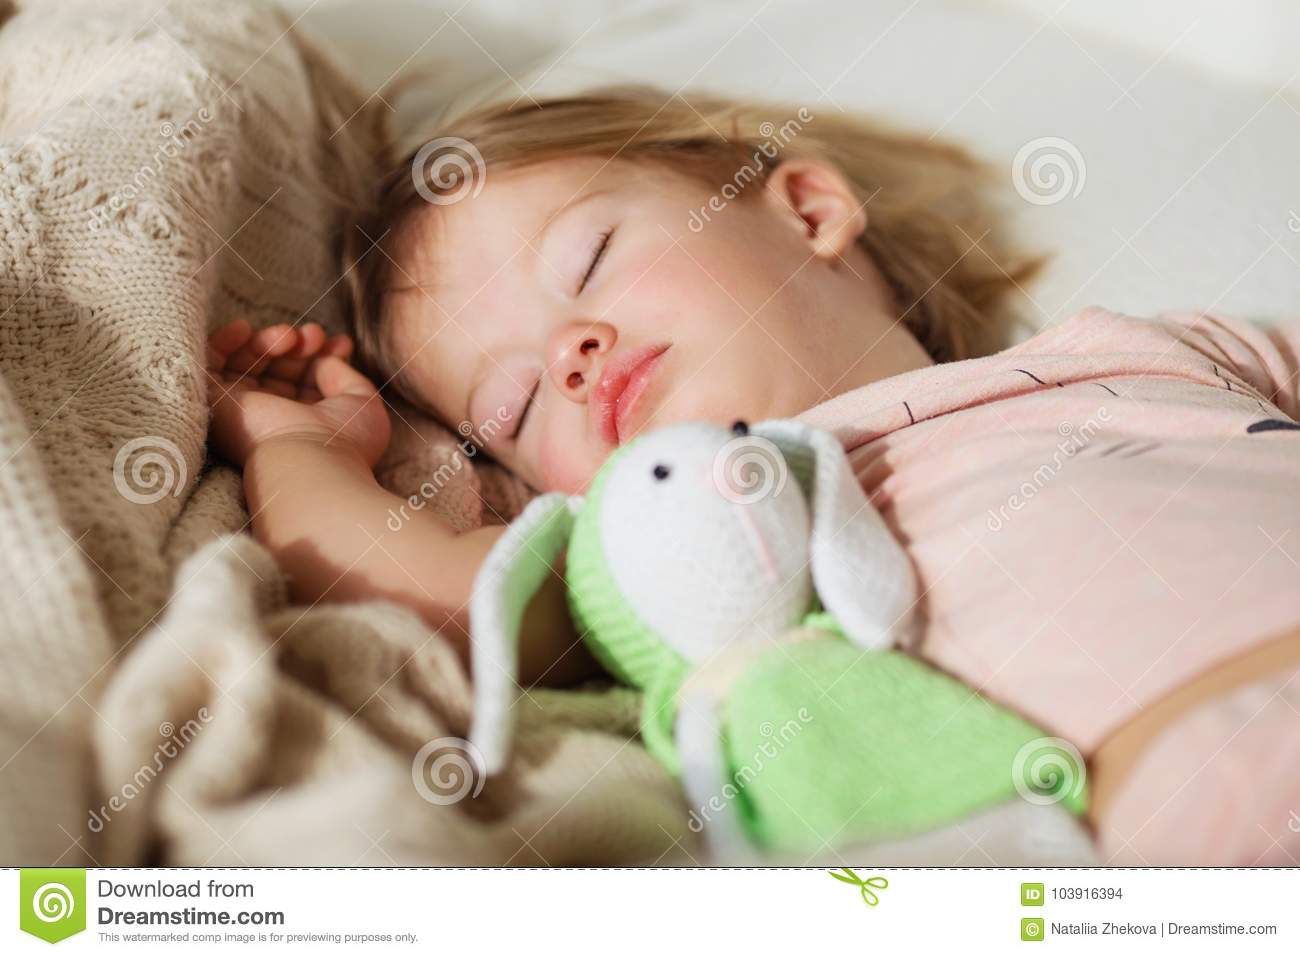 f1d081d40 Sleeping Little Girl. Carefree Sleep Little Baby With A Soft Toy ...